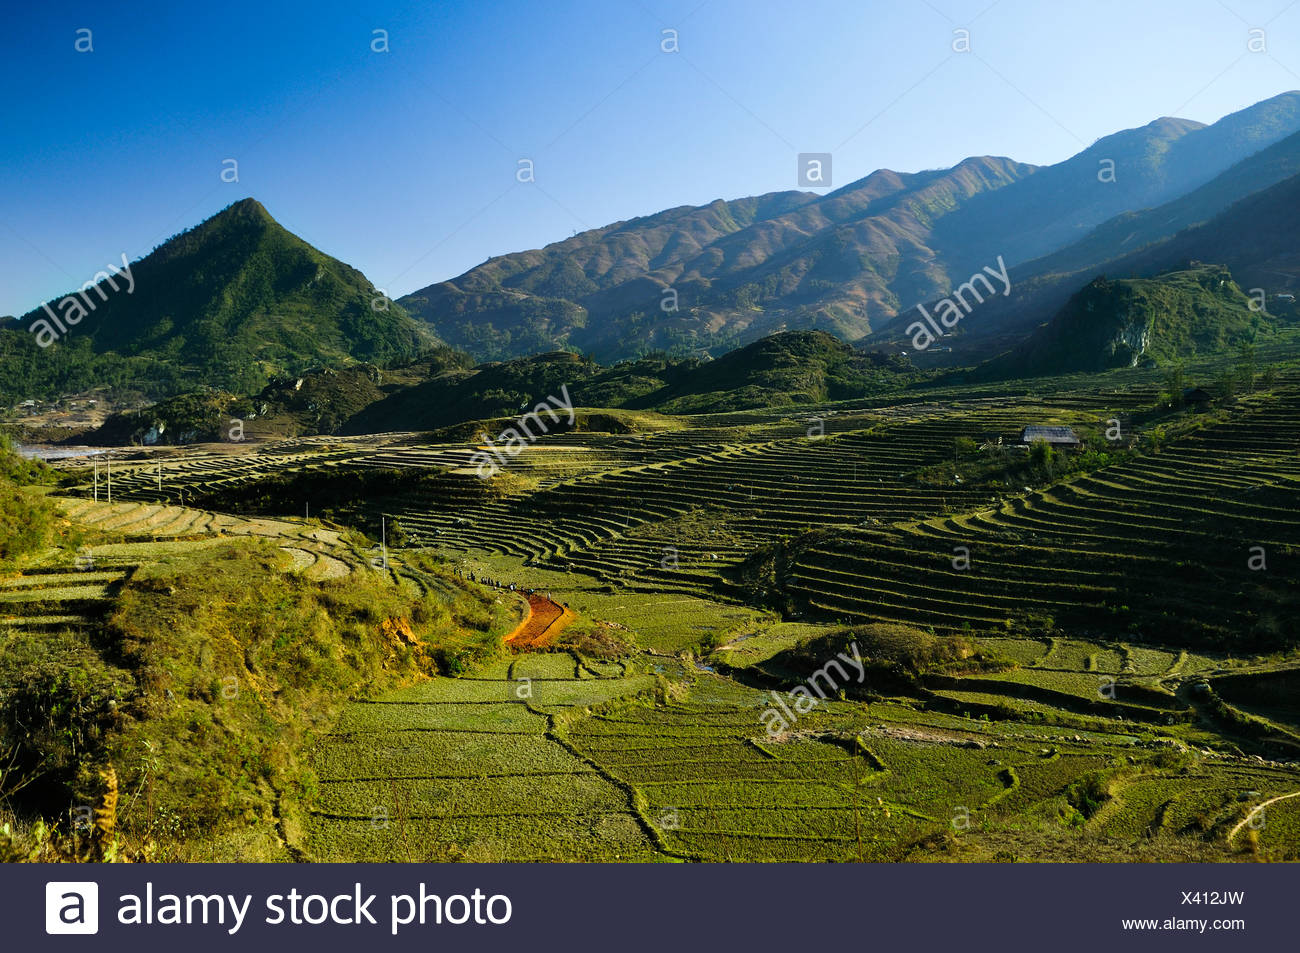 New terrace, rice terraces, rice paddies in Sapa or Sa Pa, Lao Cai province, northern Vietnam, Vietnam, Southeast Asia, Asia - Stock Image